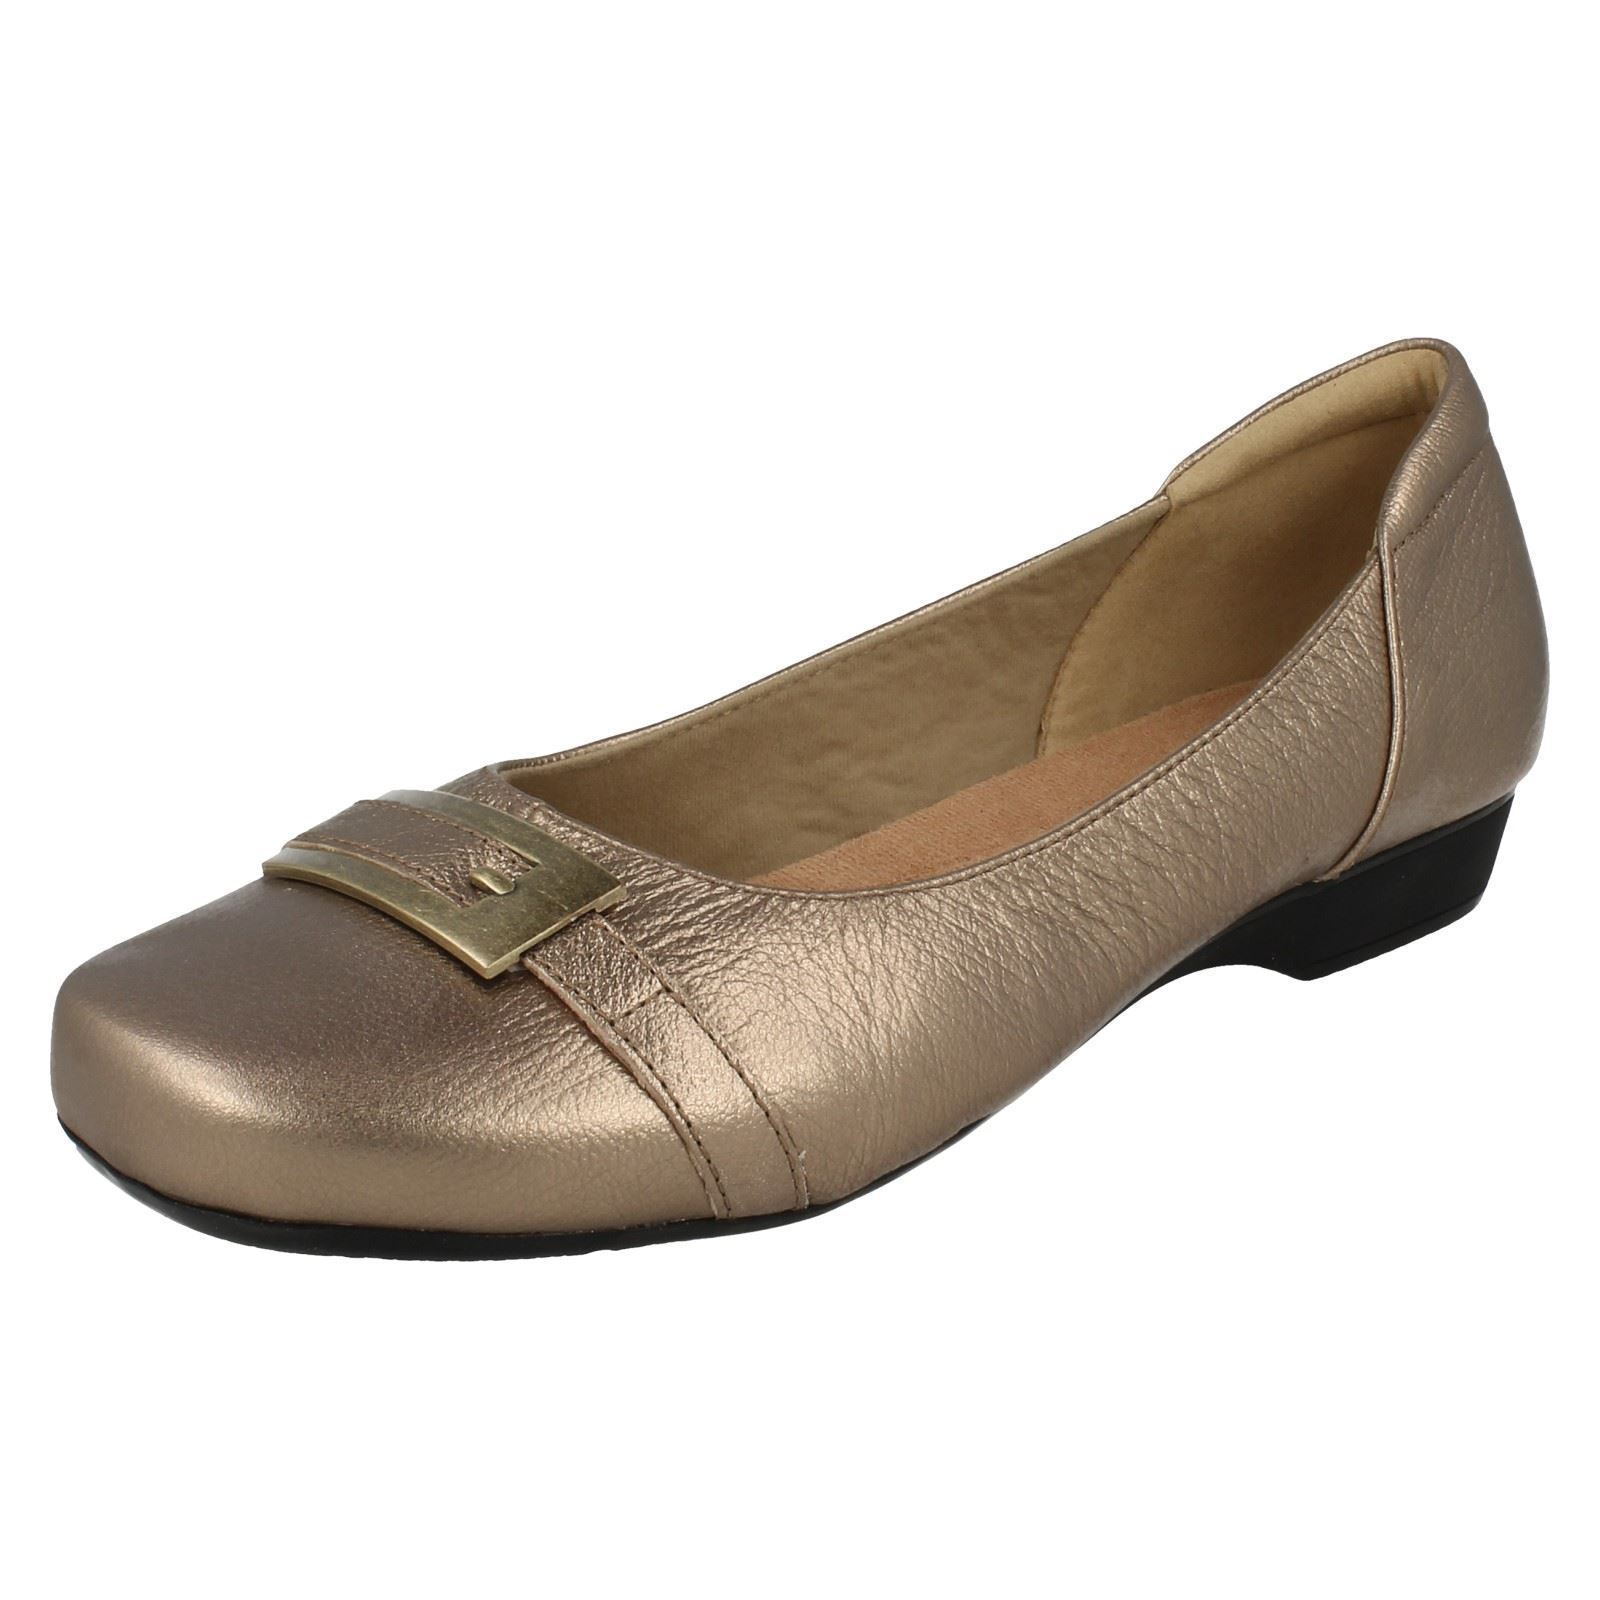 a6f8b96163238 Ladies Clarks Smart Slip on Shoes Blanche West 3 UK Gold Metallic E ...